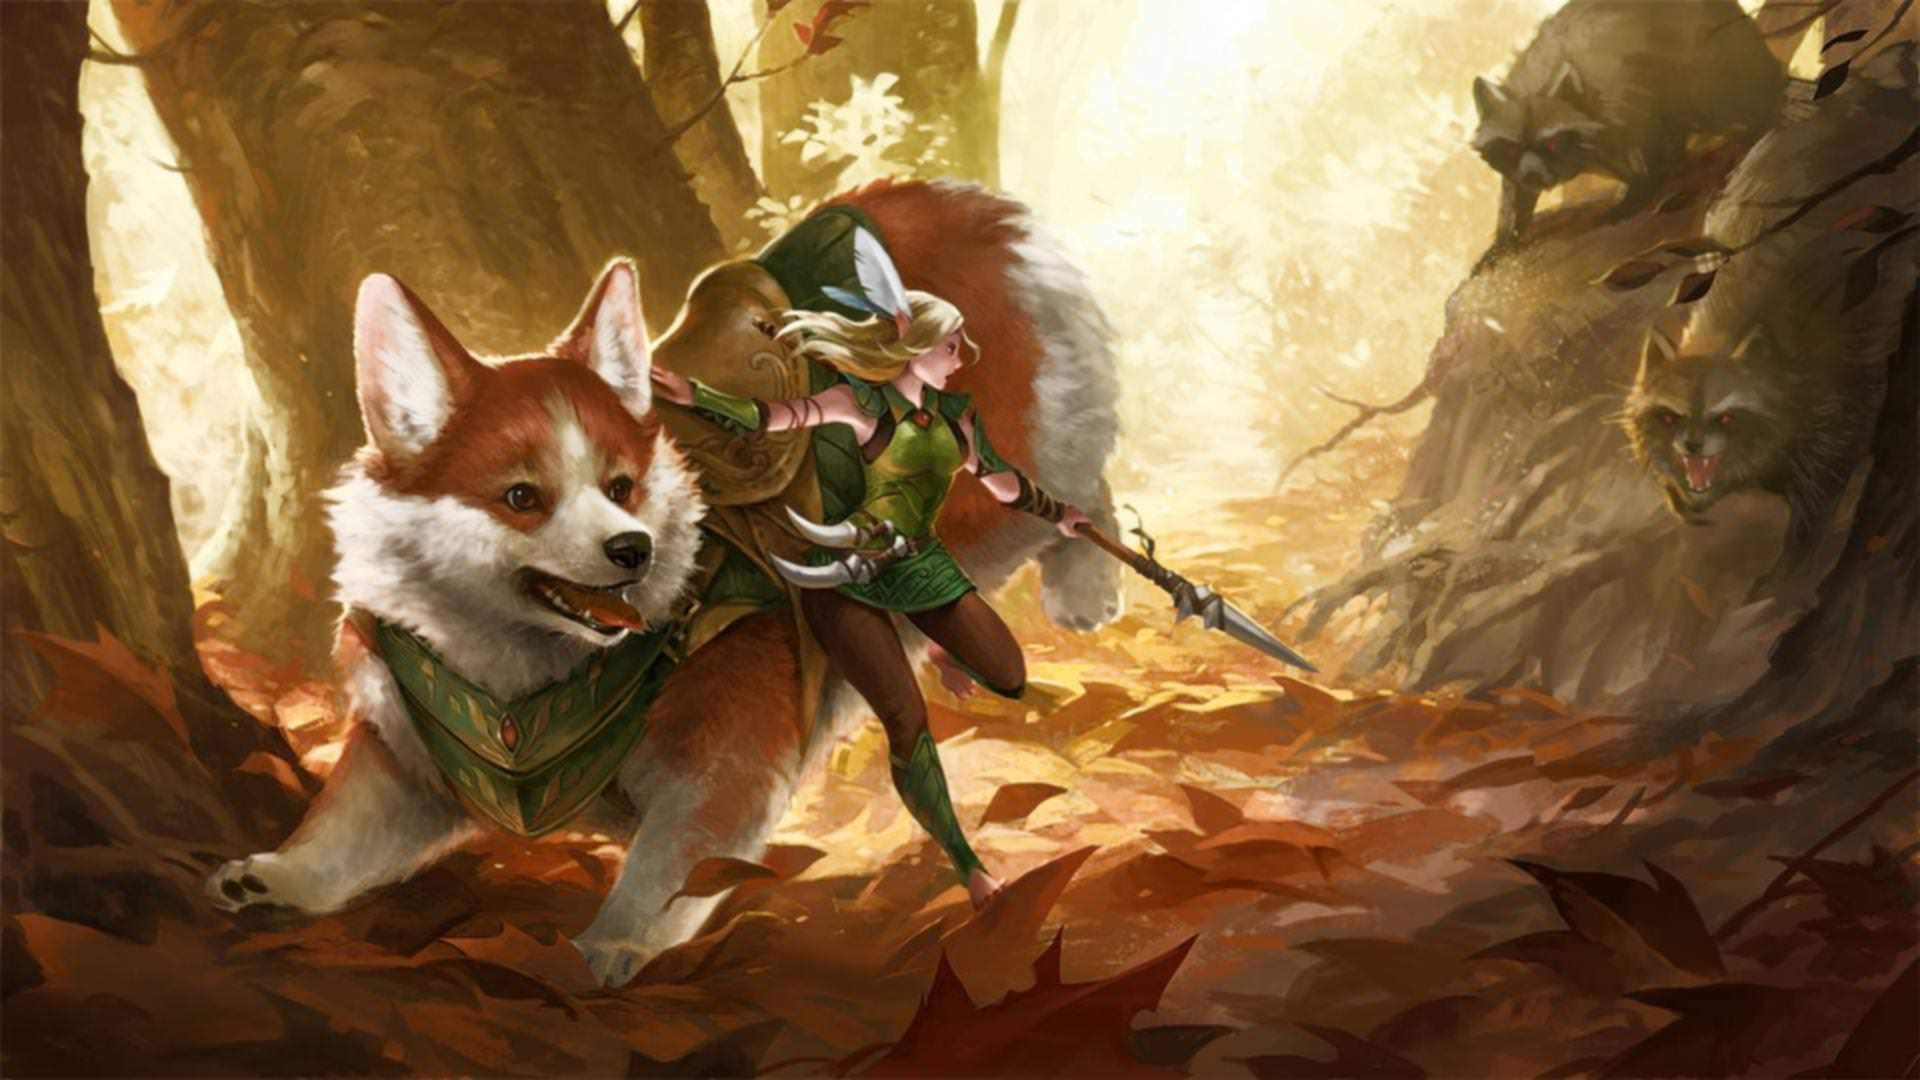 Celtic Wallpaper Hd Fairy And Corgi Mount Vs Evil Trash Pandas 1920x1080